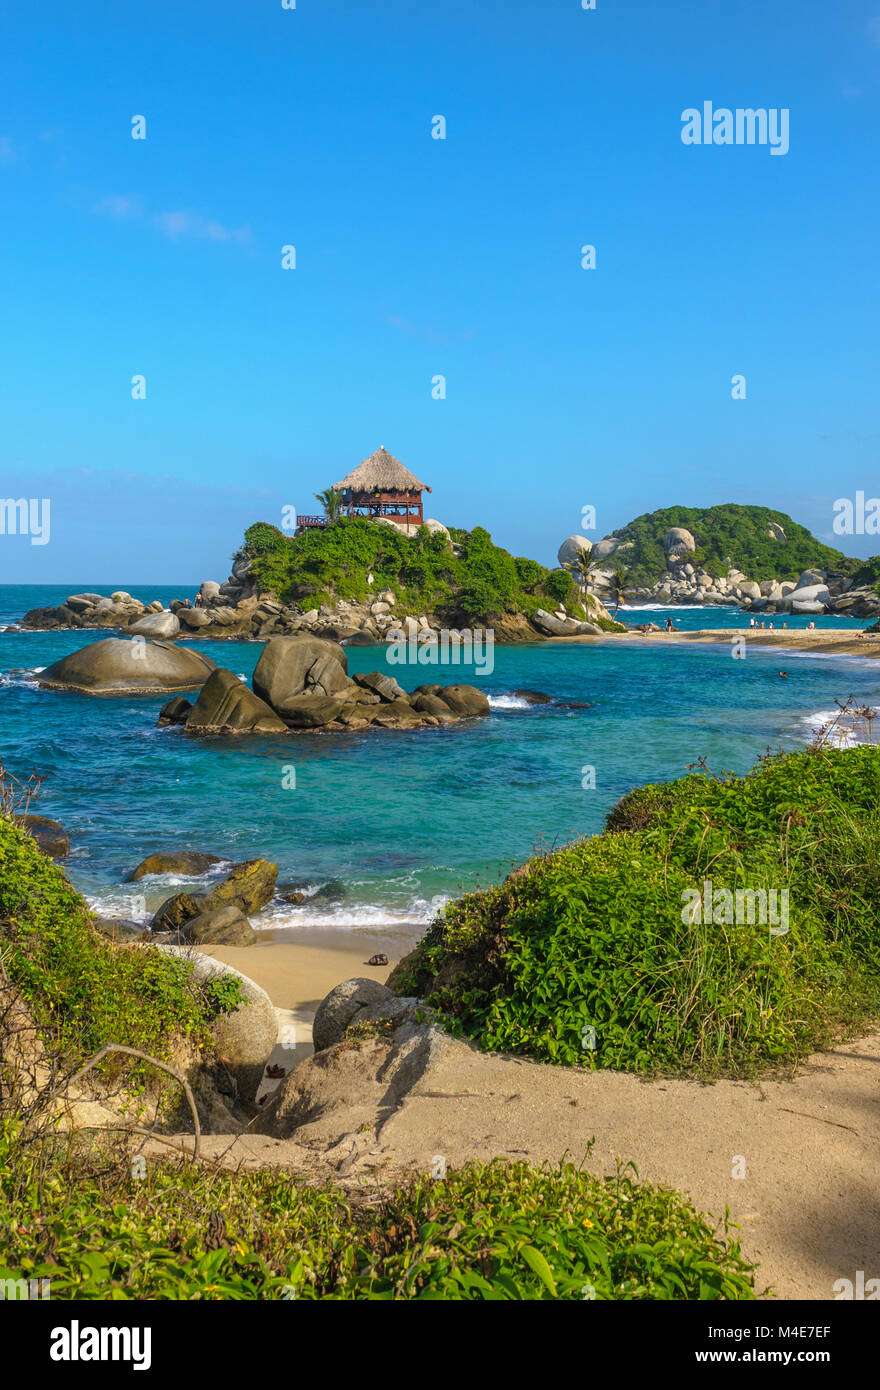 Cabo San Juan, Tayrona national park, Colombia - Stock Image